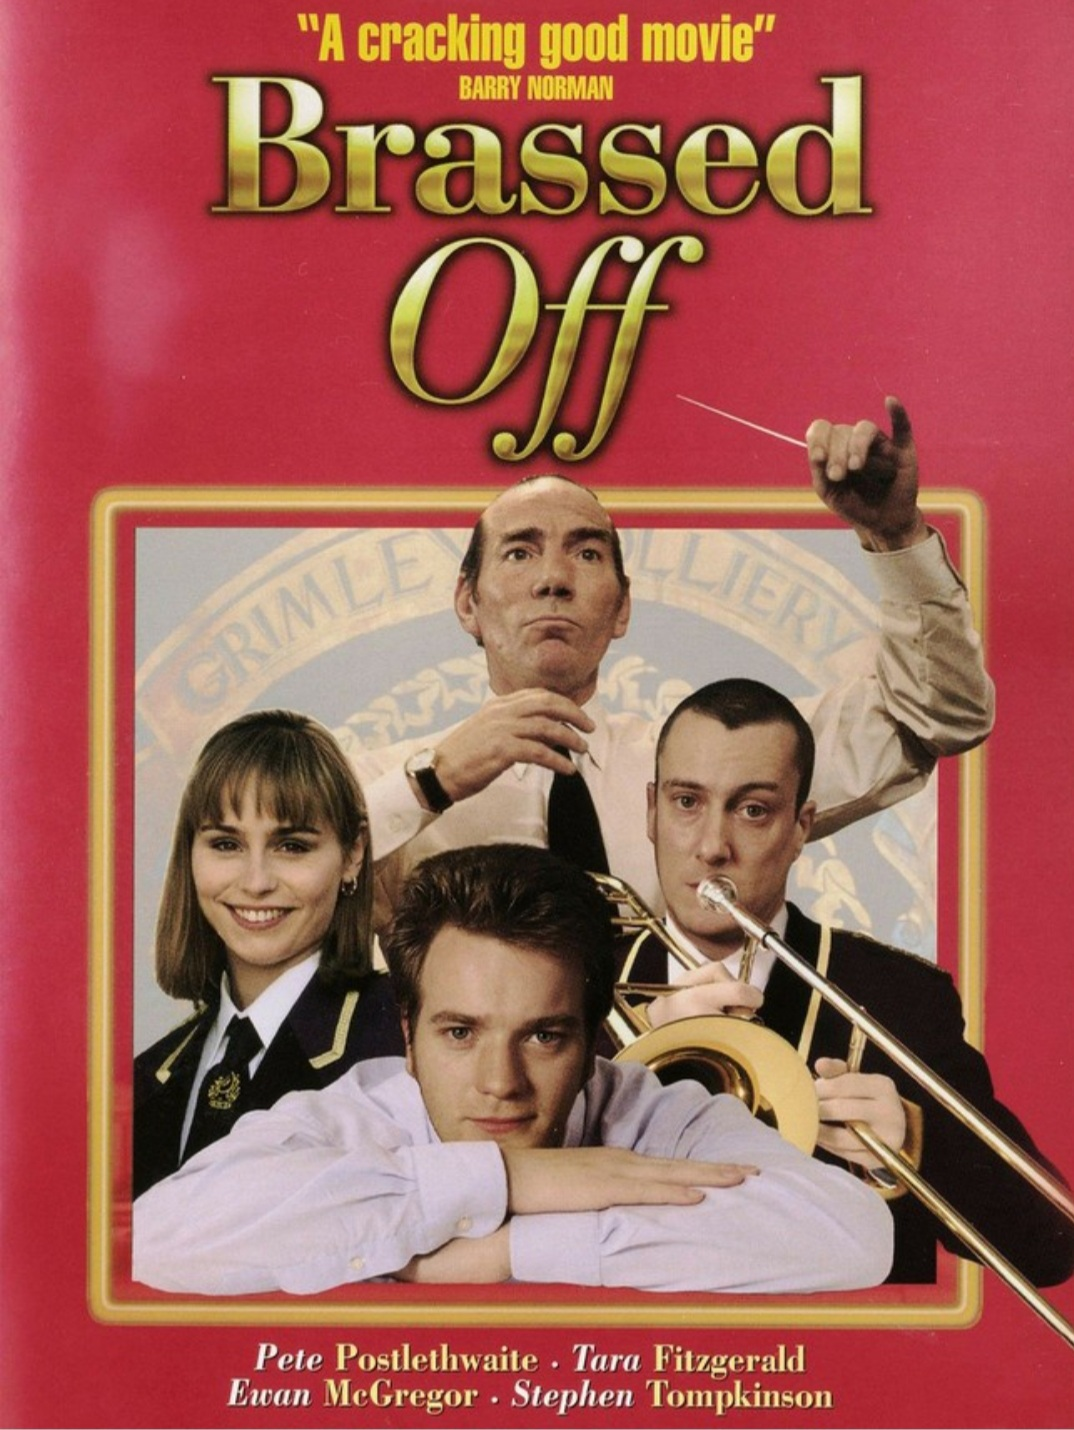 25 Years On – Brassed Off: In Conversation With Mark Herman